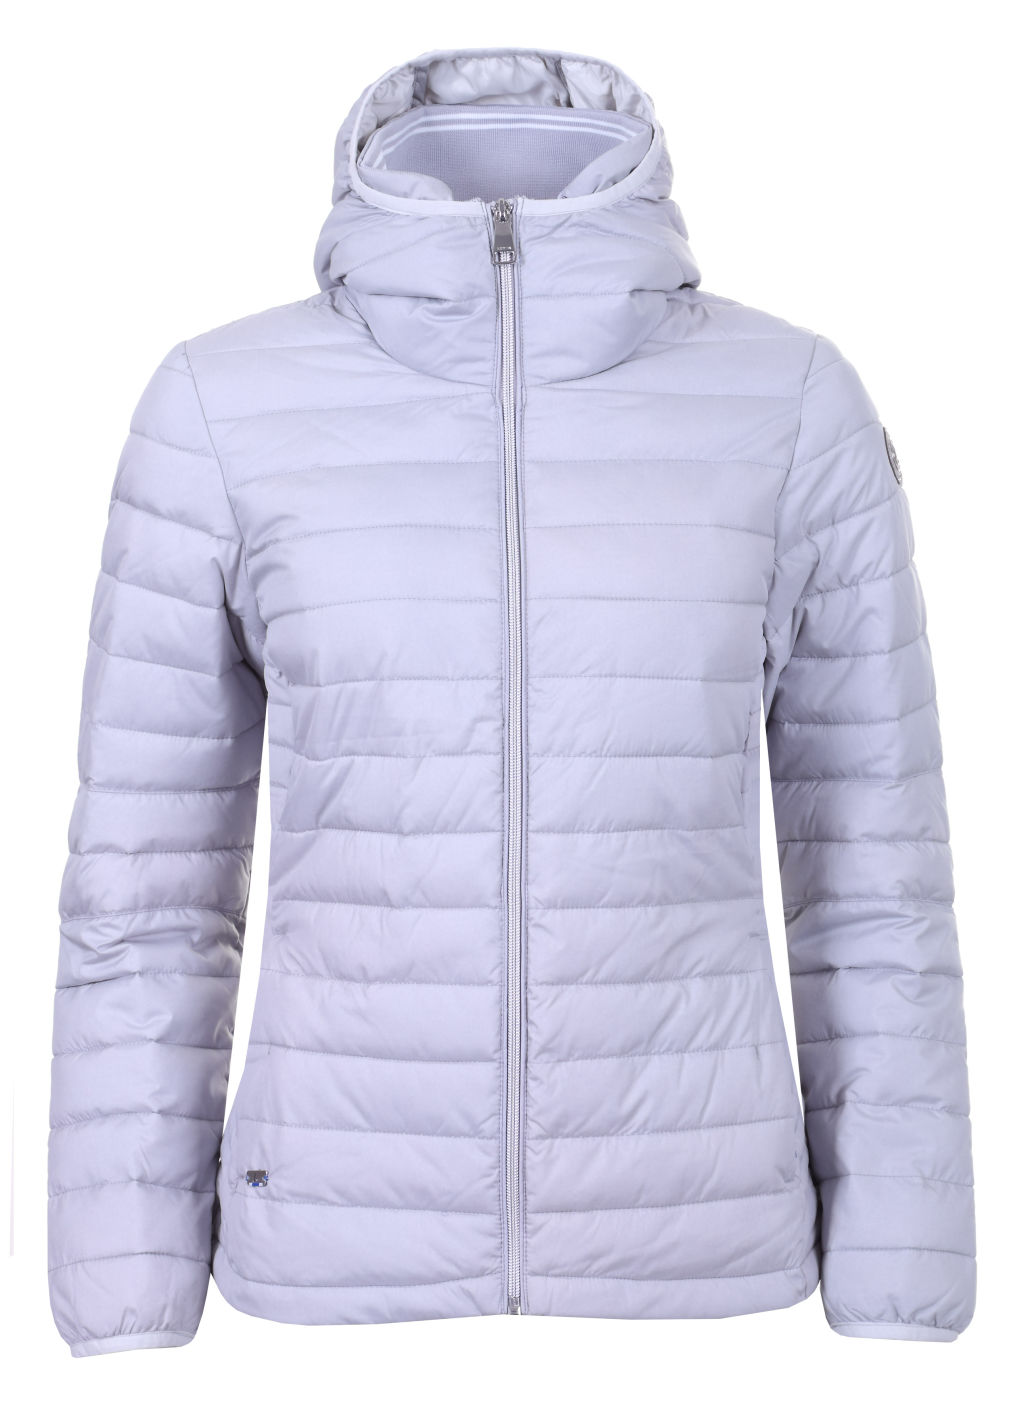 Luhta Marjo D-fit Jacket W - Naisten vanutakki - Intersport 0ed60fb073